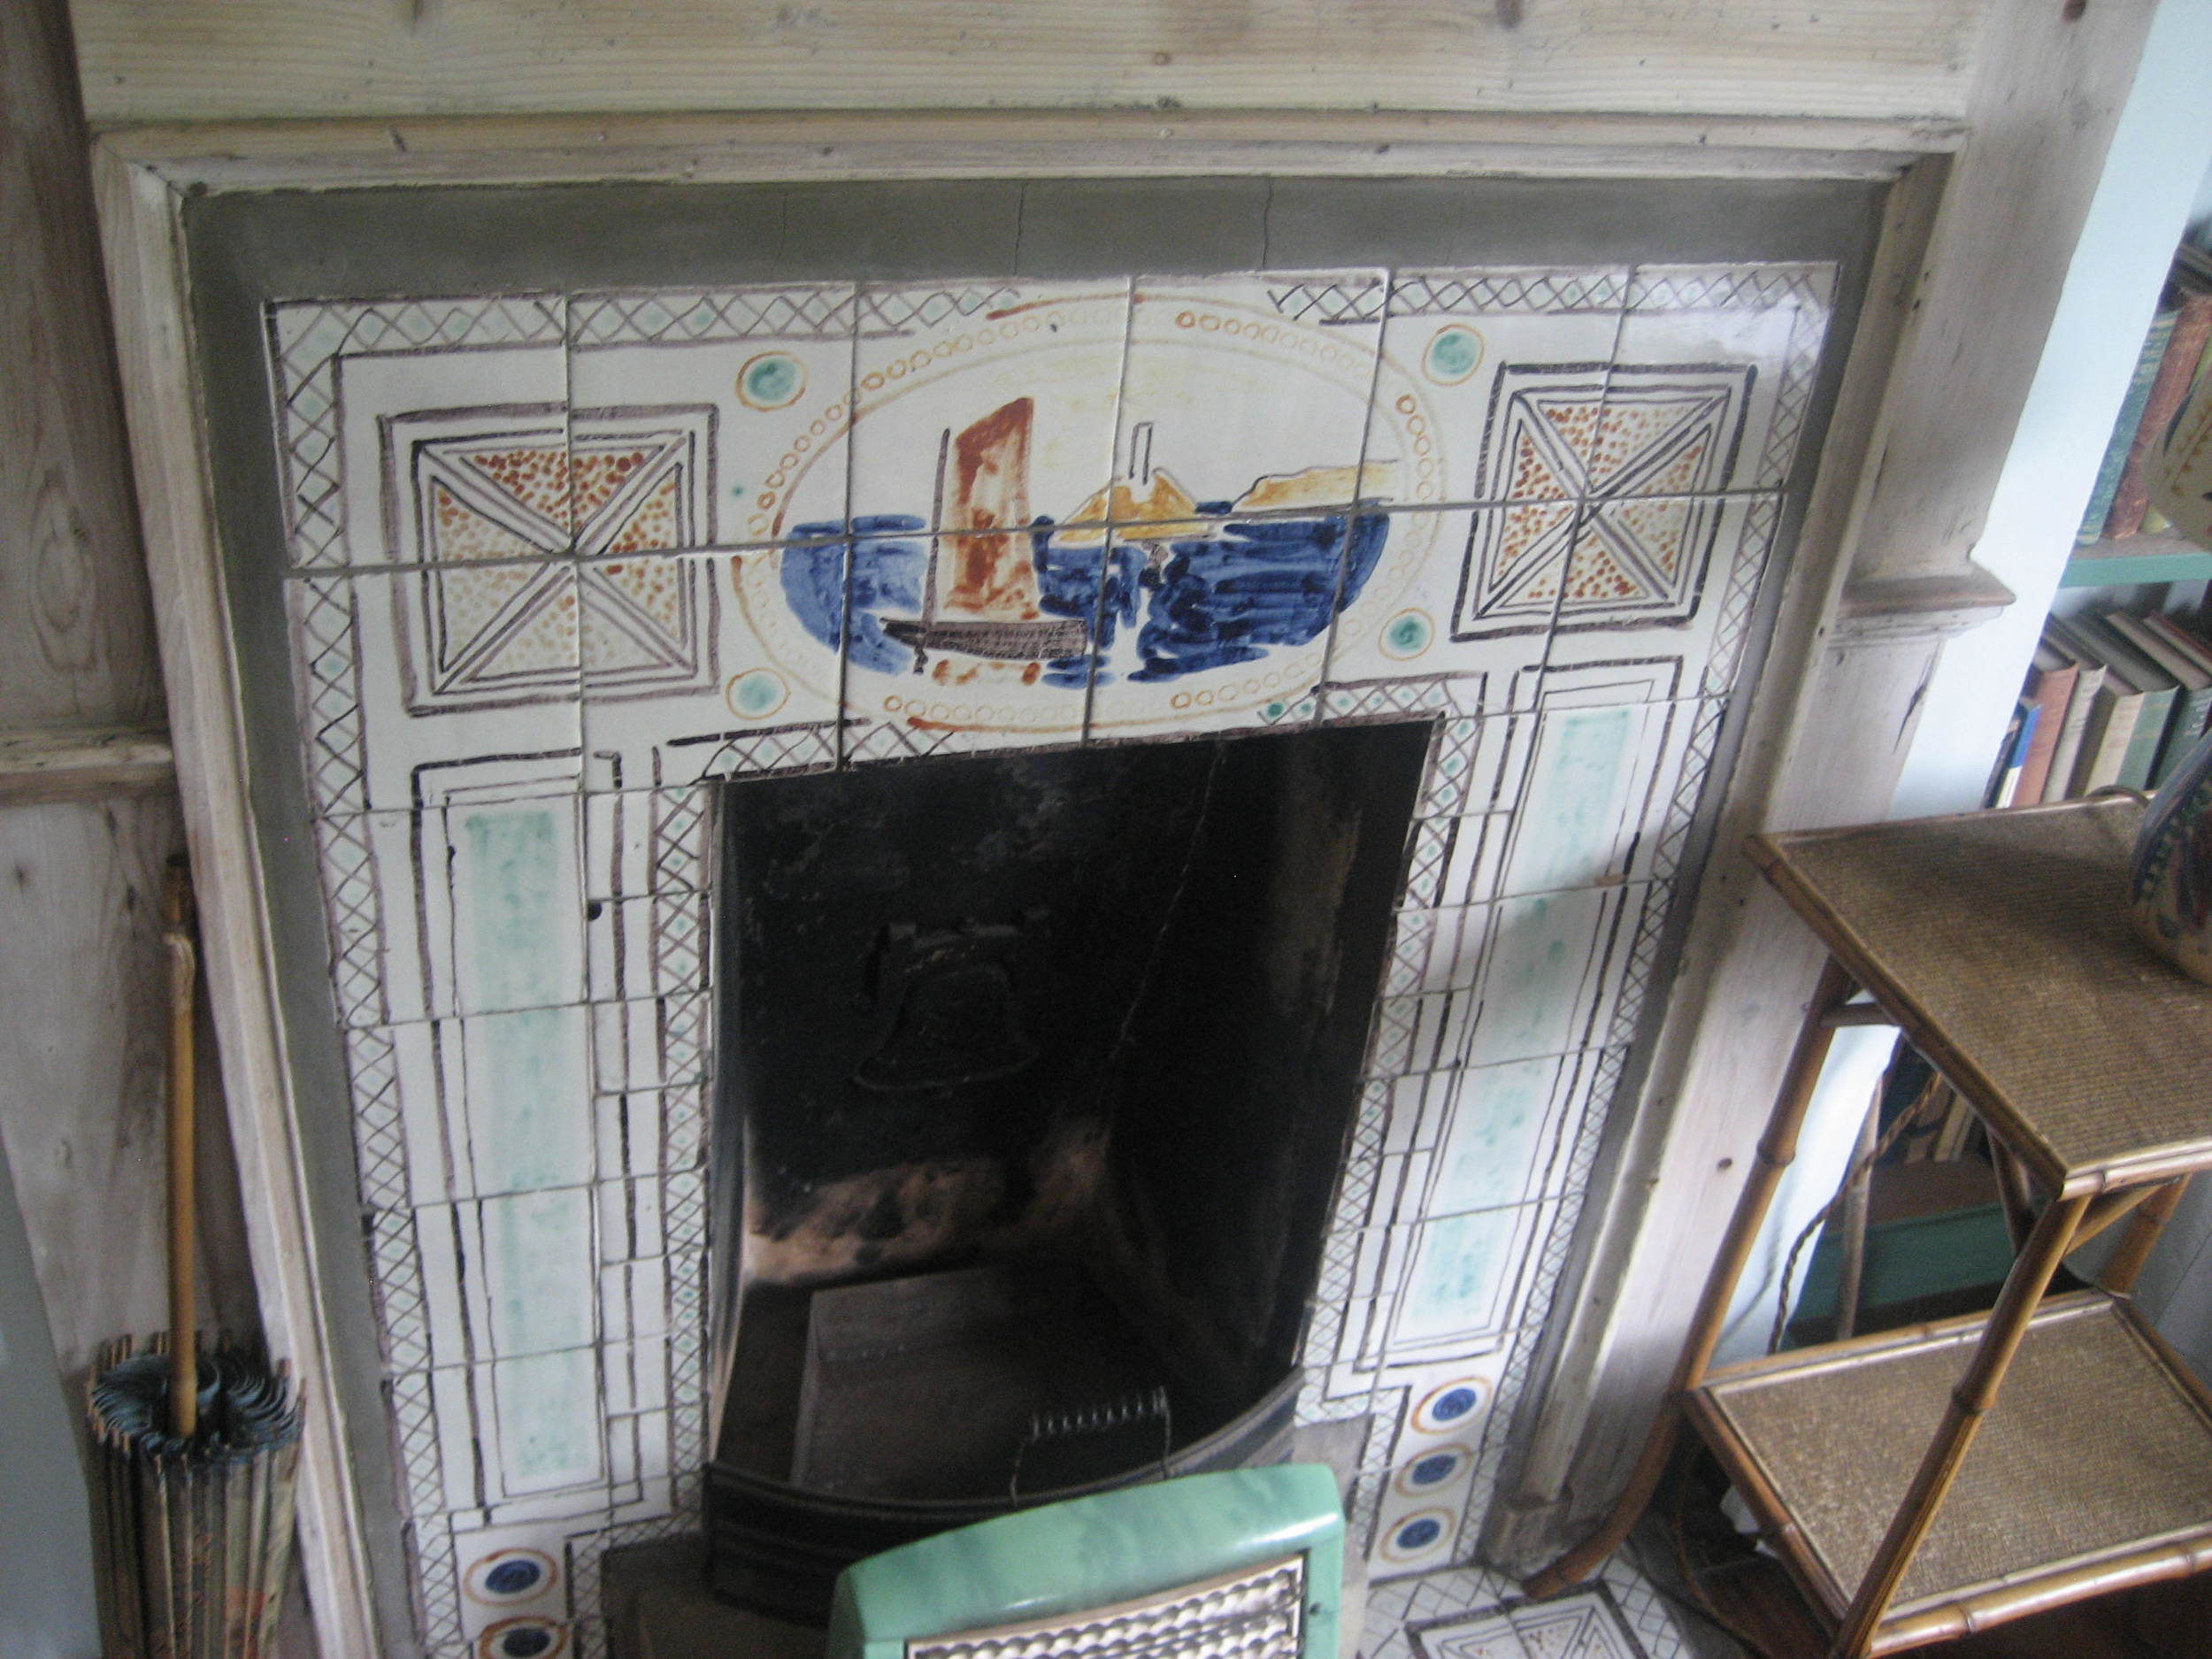 To the Lighthouse fireplace by Vanessa Bell and inspiration for Woolf's novel